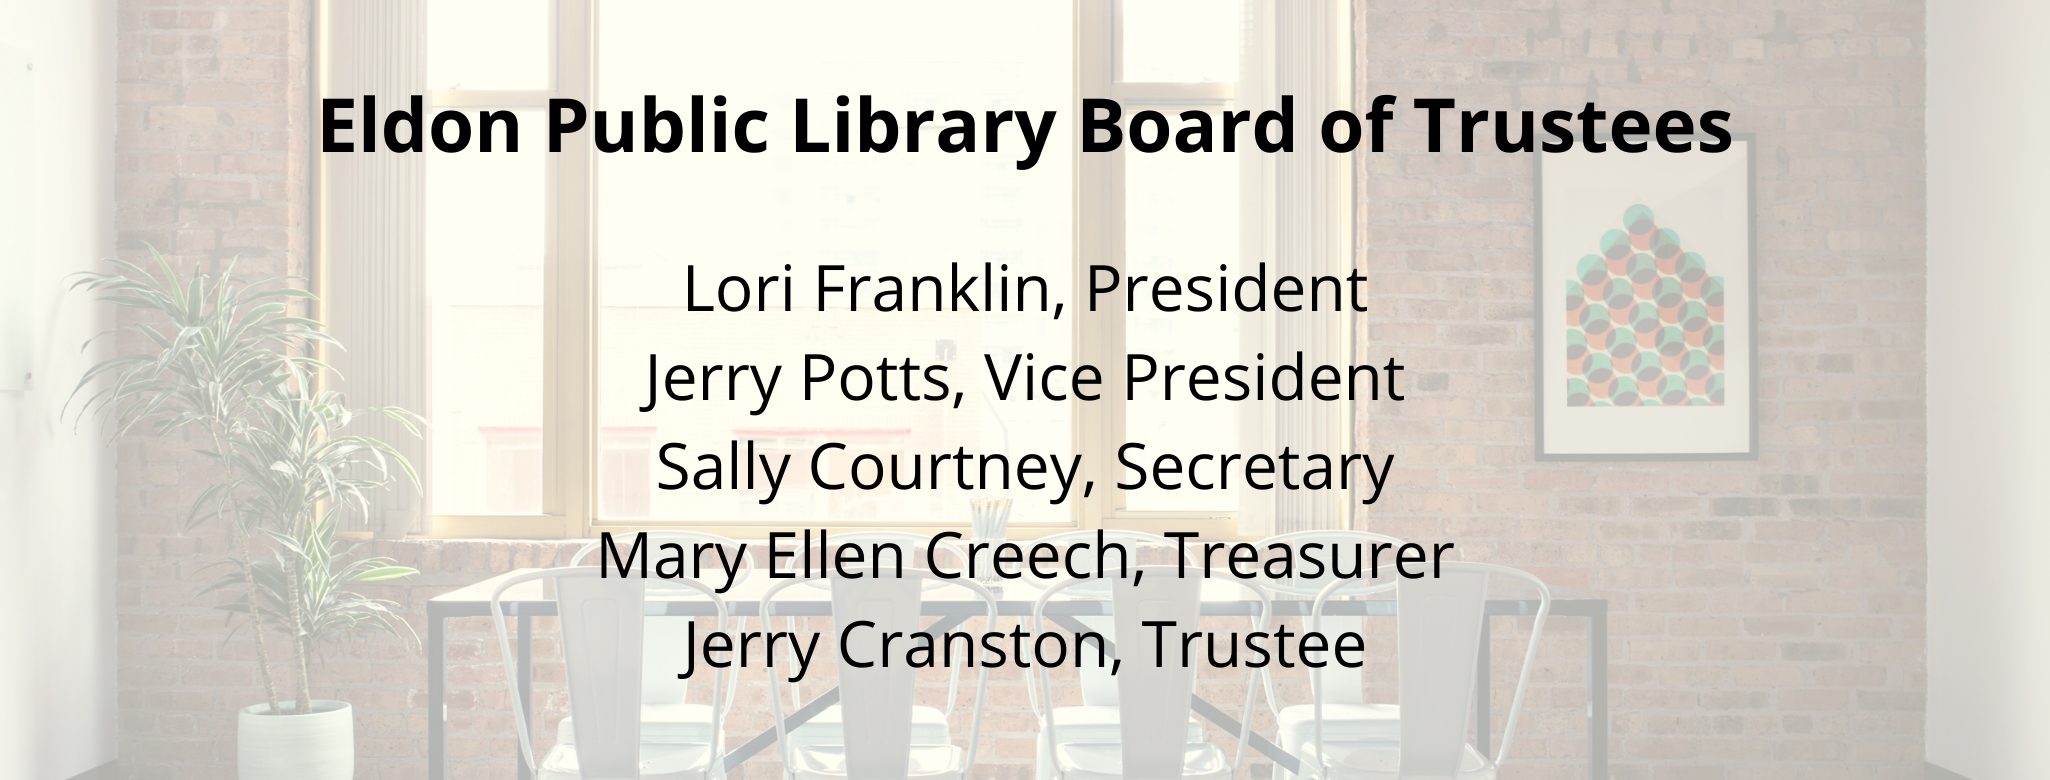 Eldon Public Library Board of Trustees.png